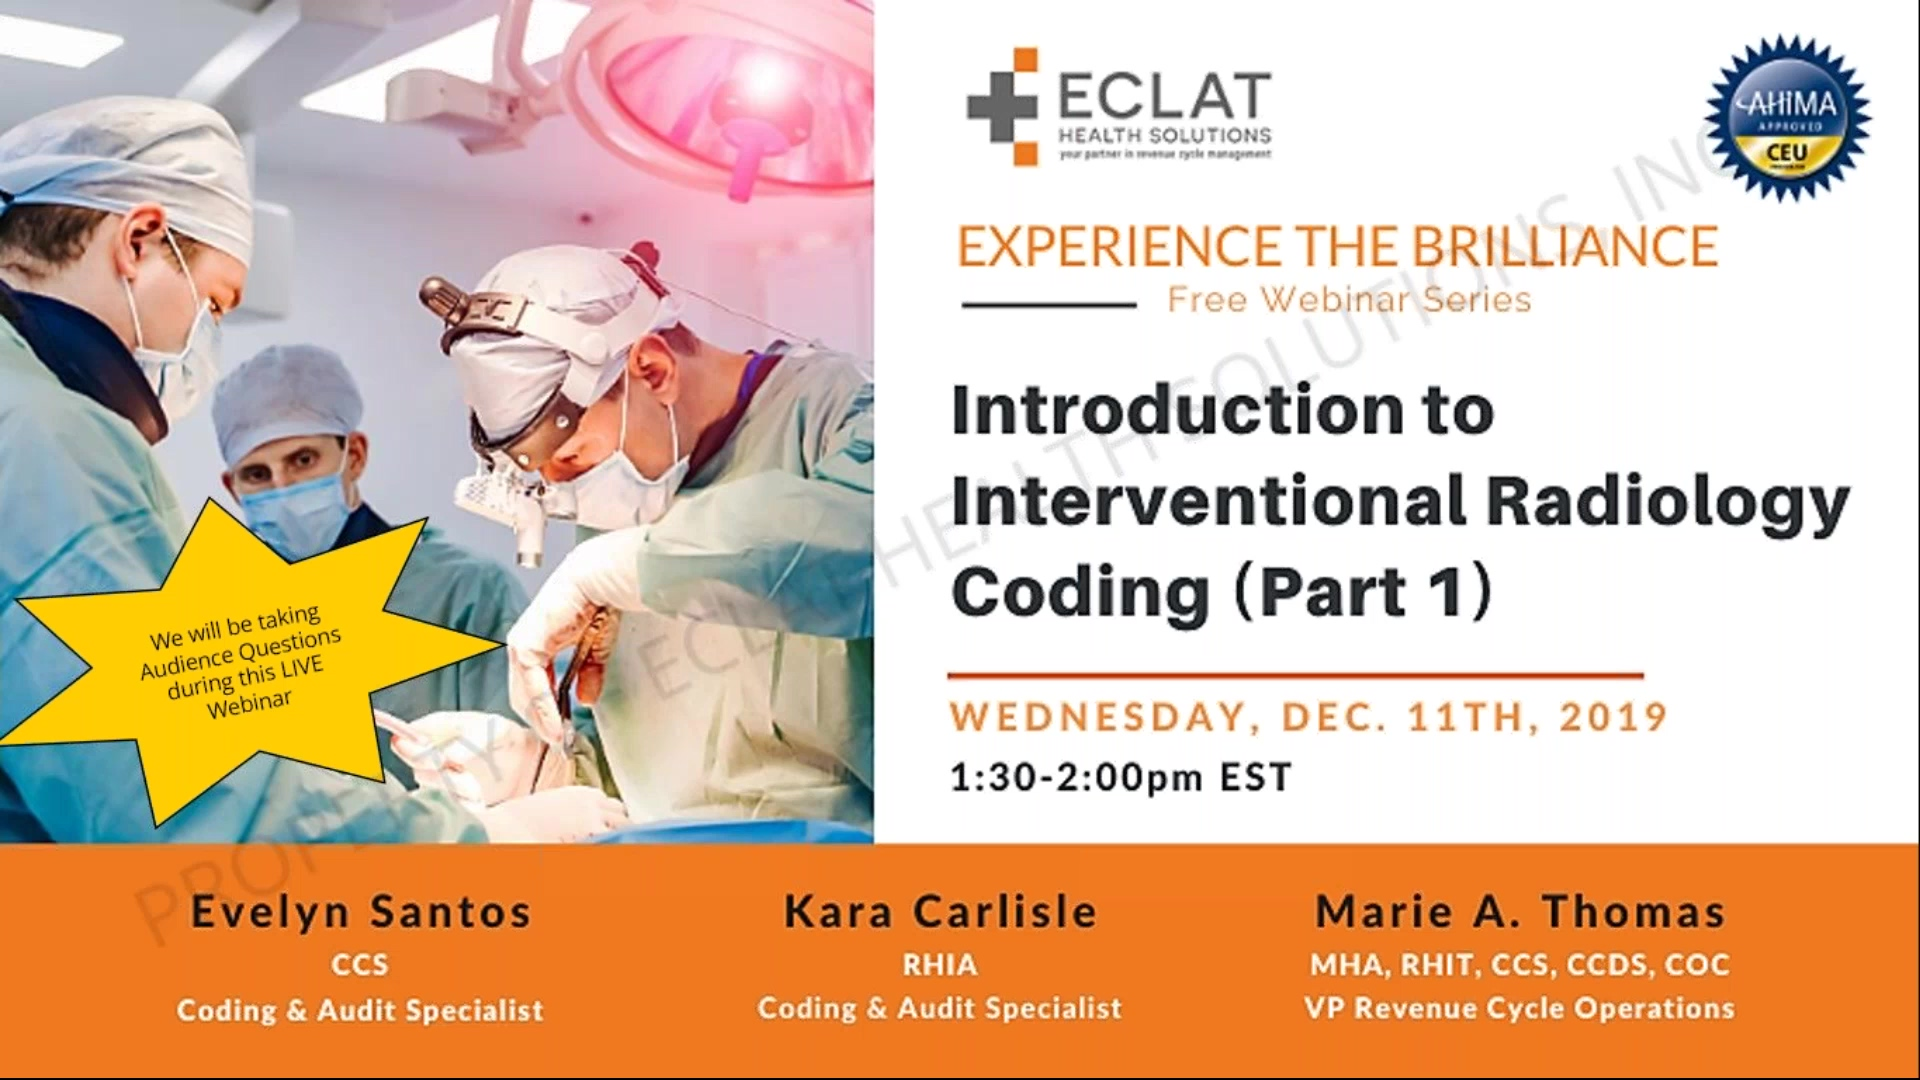 Introduction to Interventional Radiology Coding (Part 1)-2